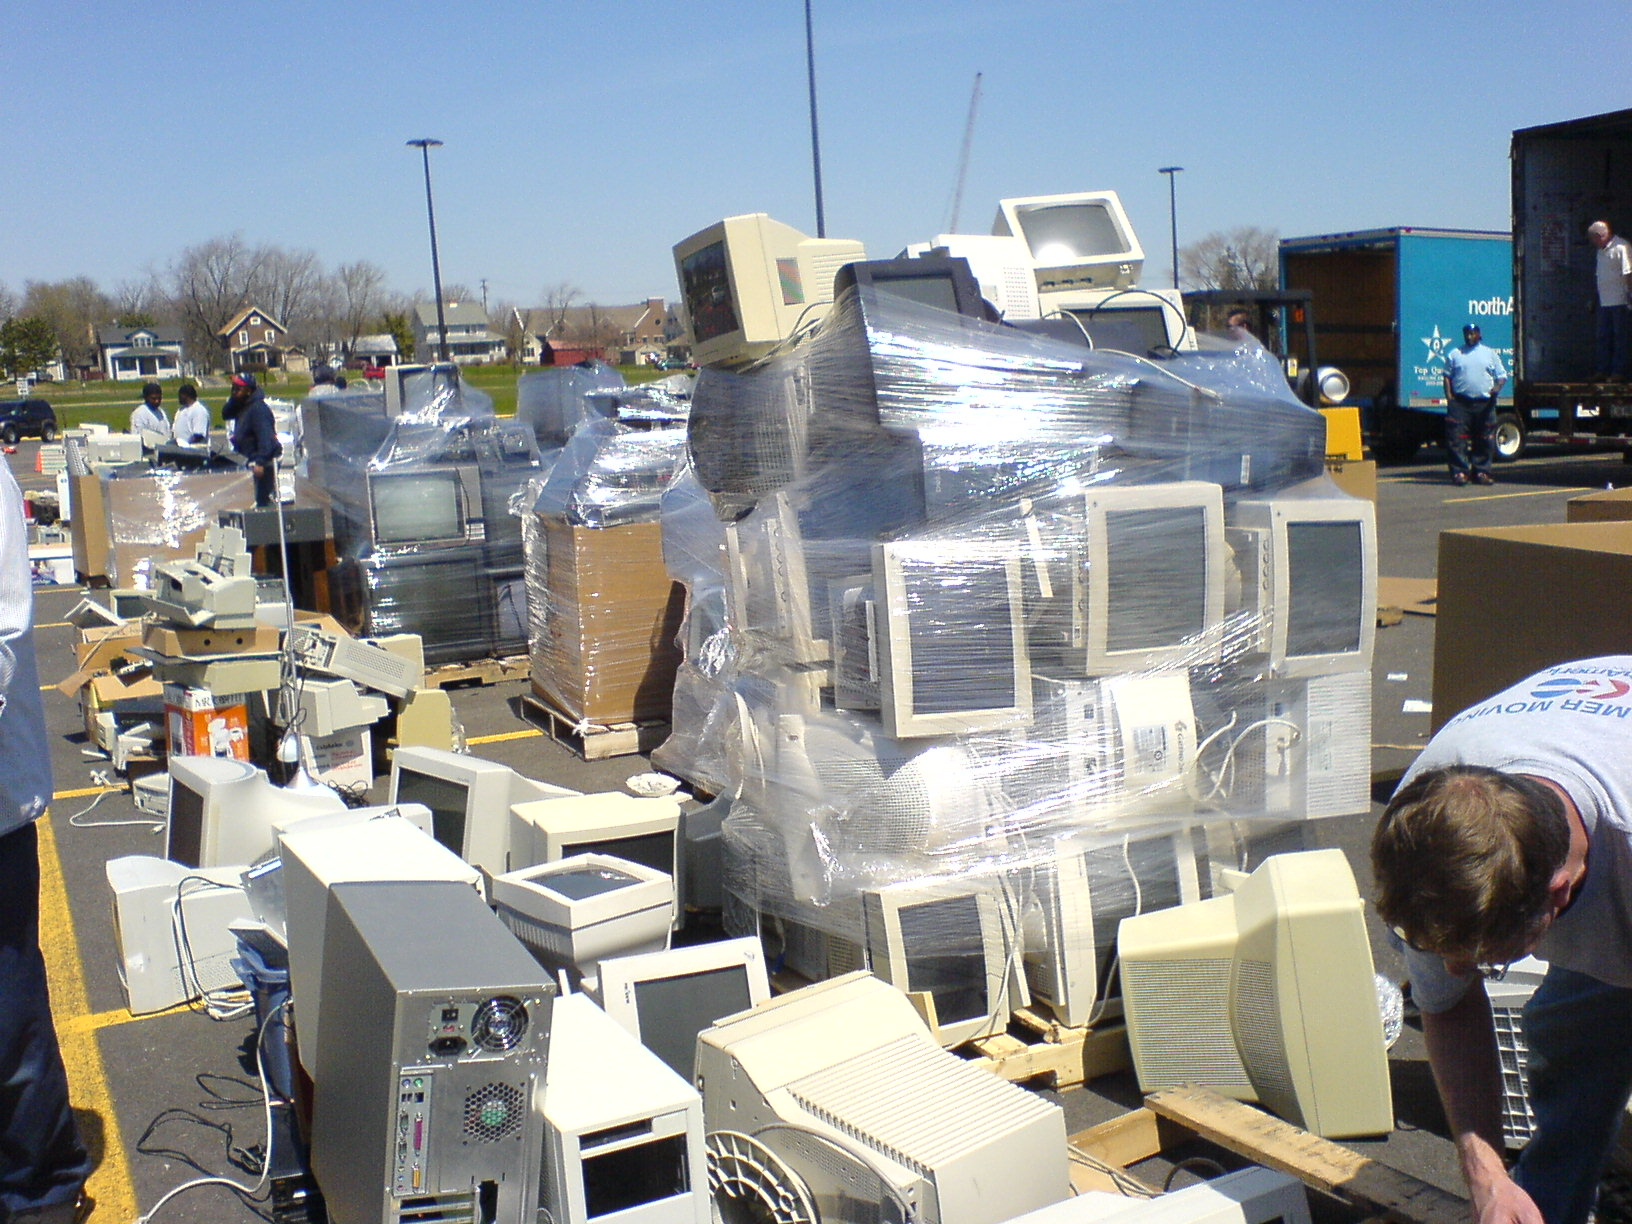 Photo credit: By George Hotelling from Canton, MI, United States (E-waste recycling in Ann Arbor) [CC BY-SA 2.0 ( https://creativecommons.org/licenses/by-sa/2.0) ], via Wikimedia Commons